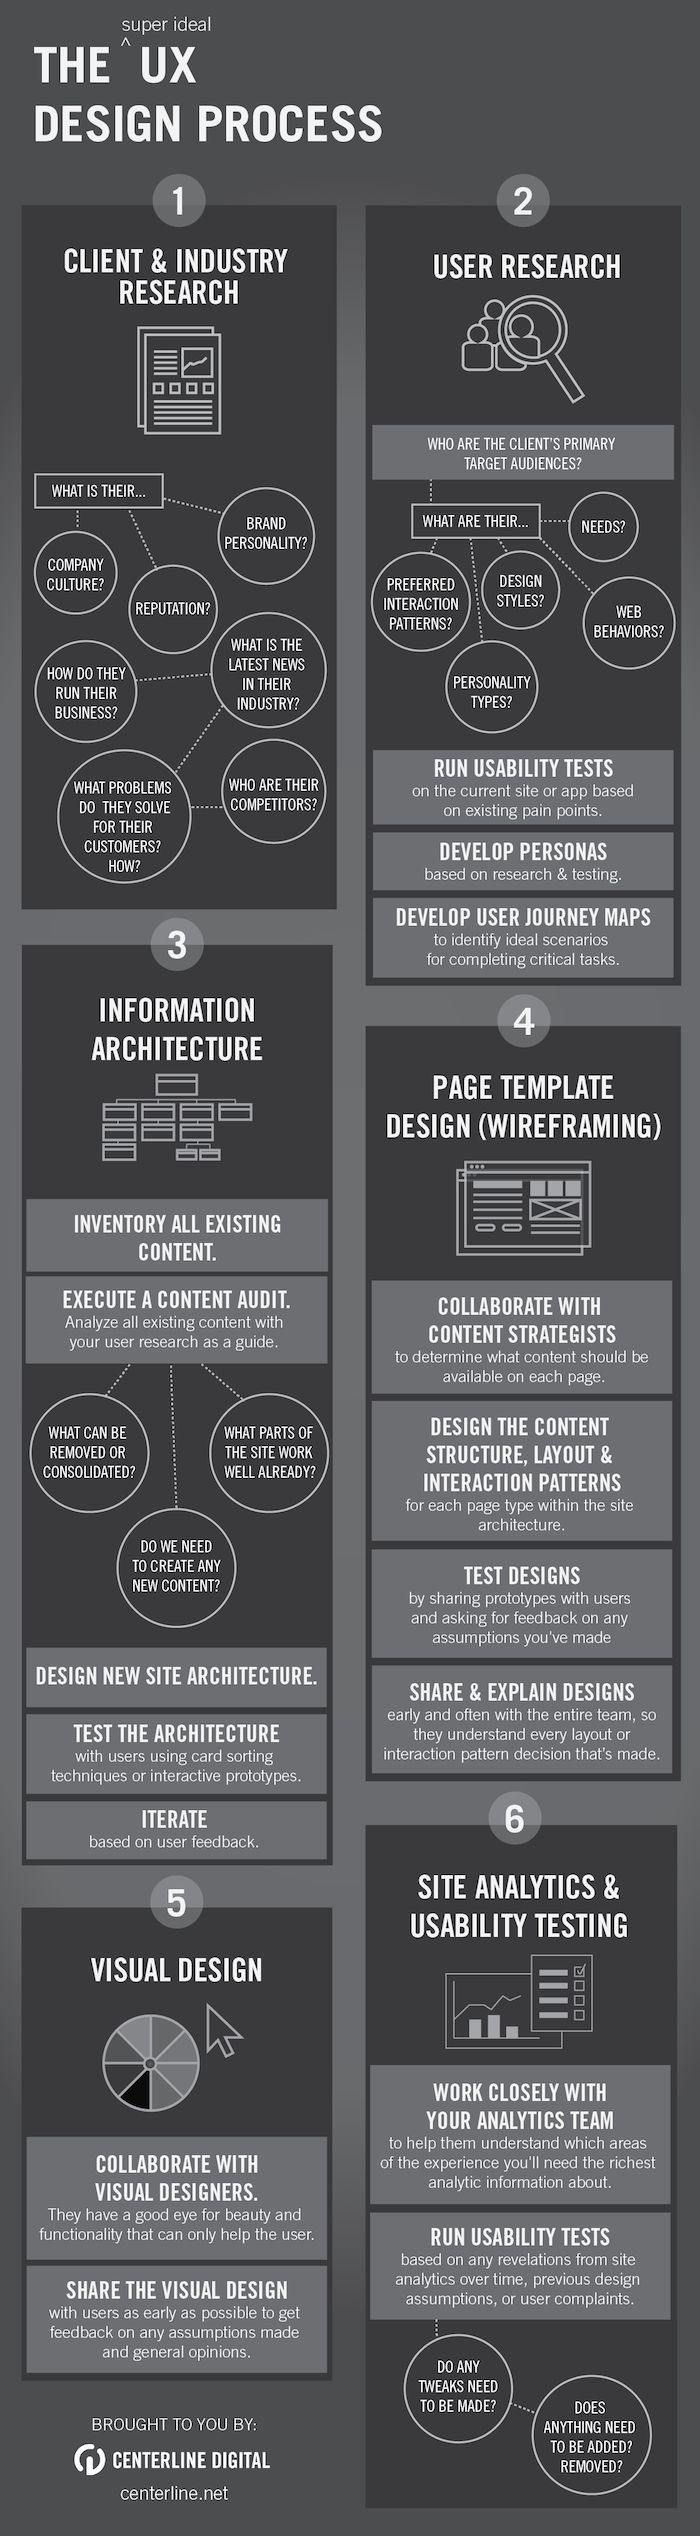 celebrating  2000 pins... User Experience Design Process [INFOGRAPHIC] #ux #userexperience